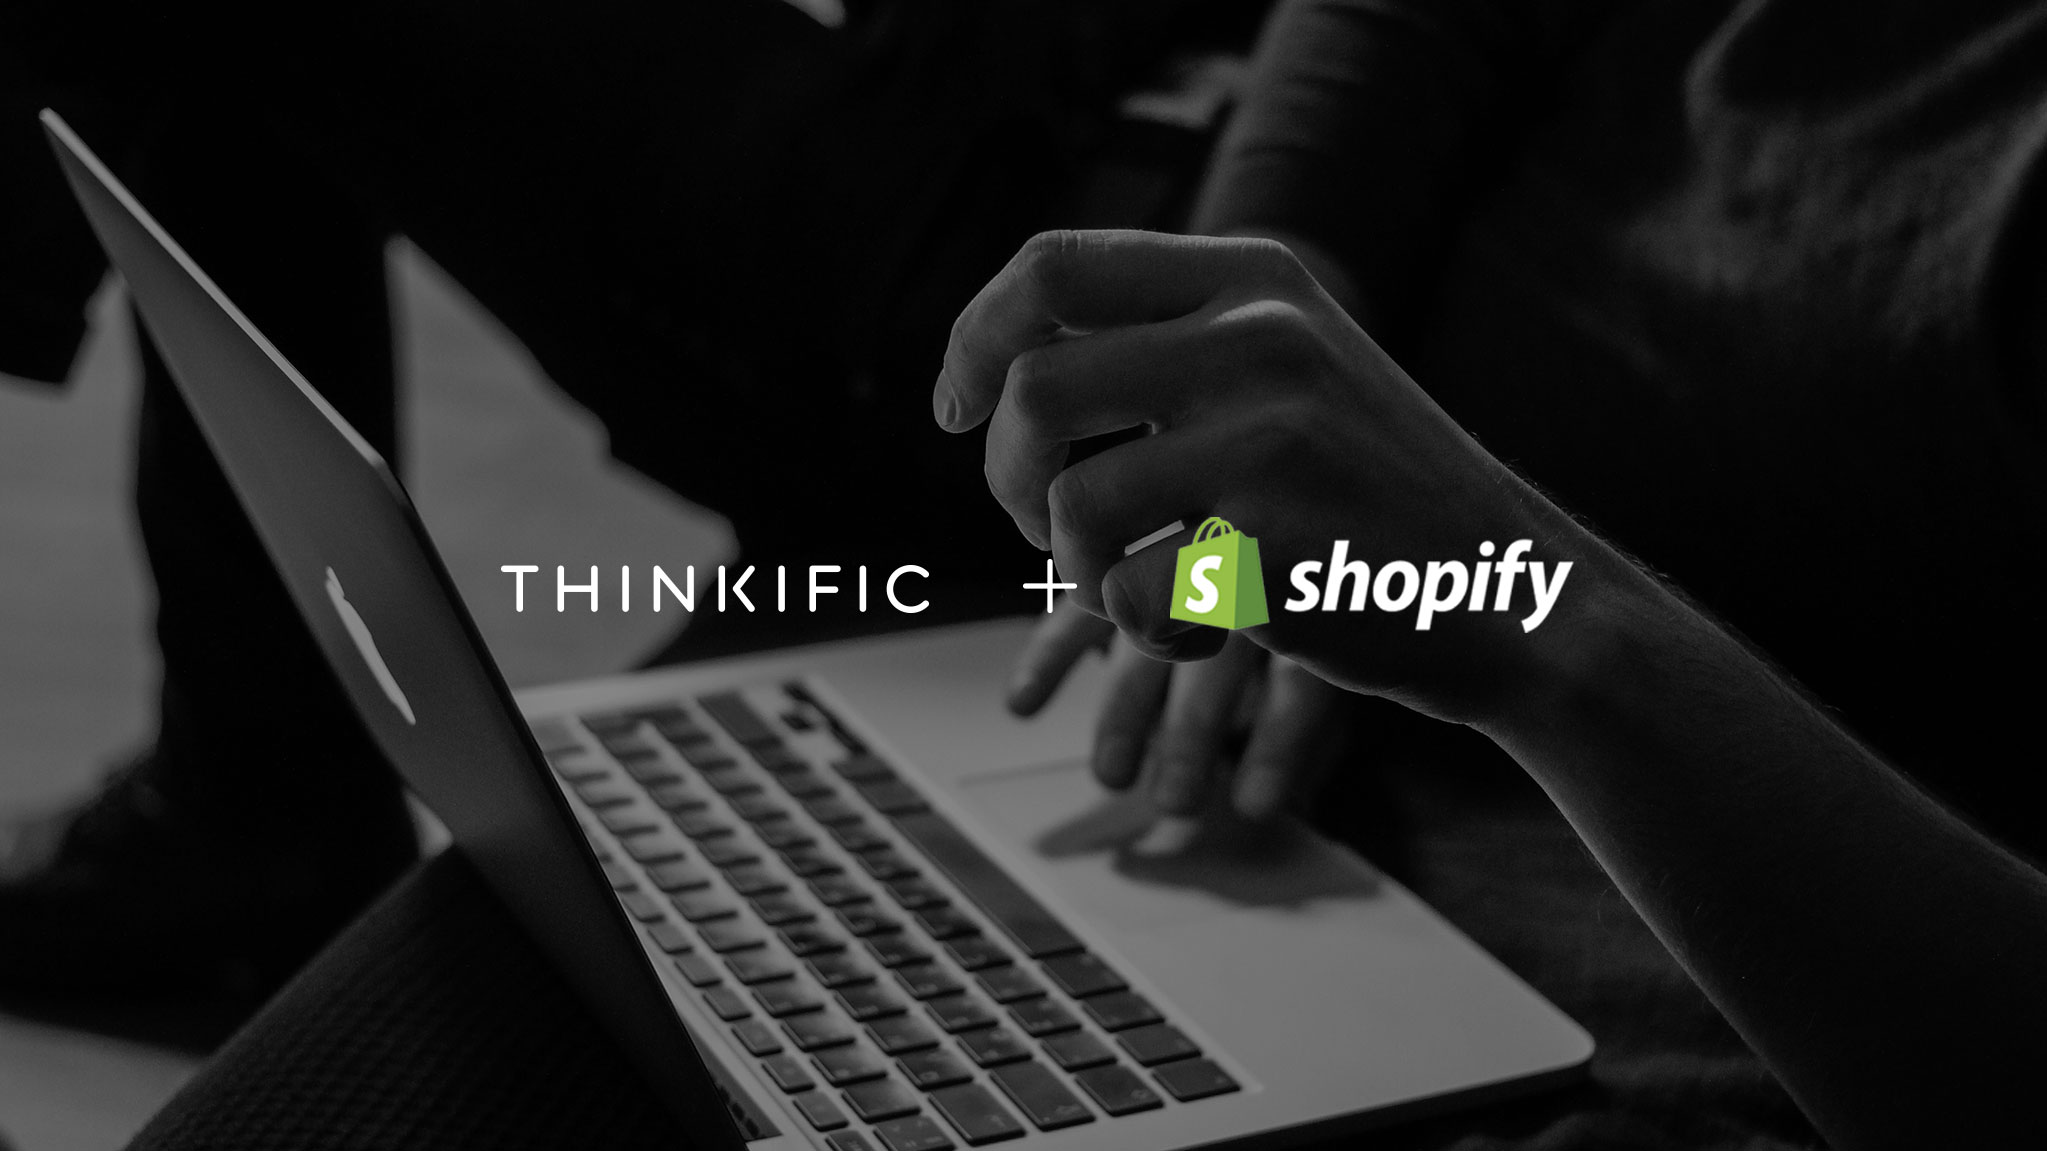 Thinkific + Shopify